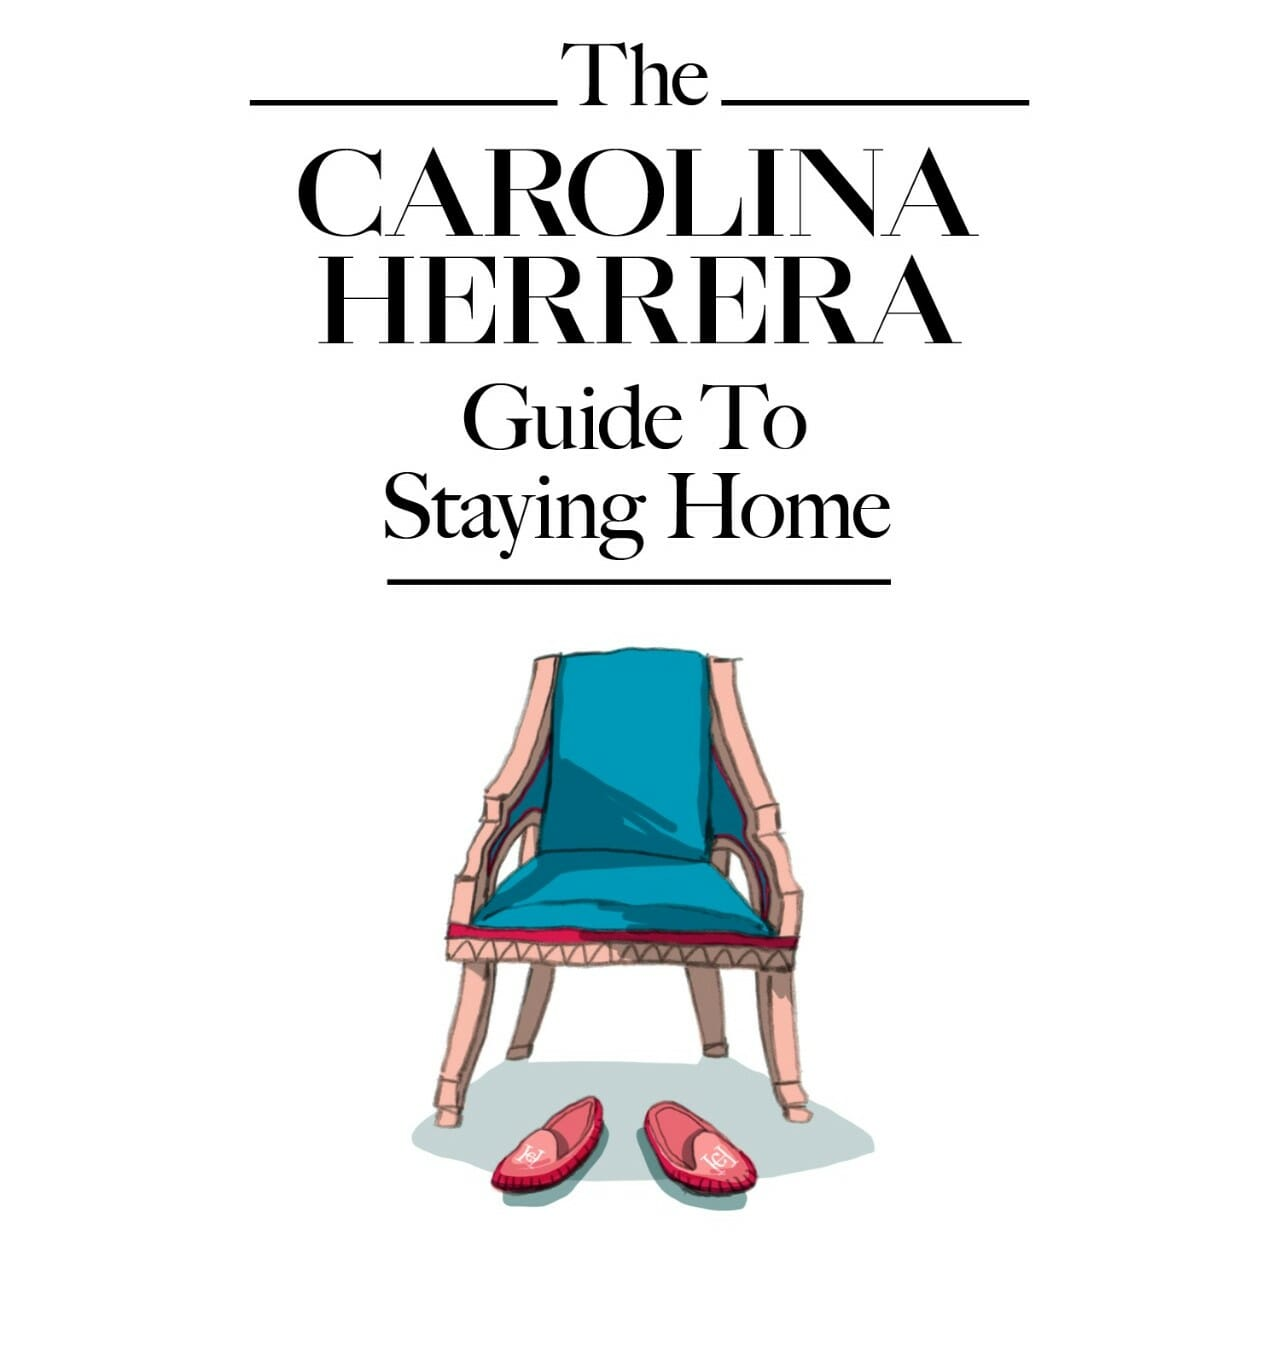 Carolina Herrera's Guide to Staying Home